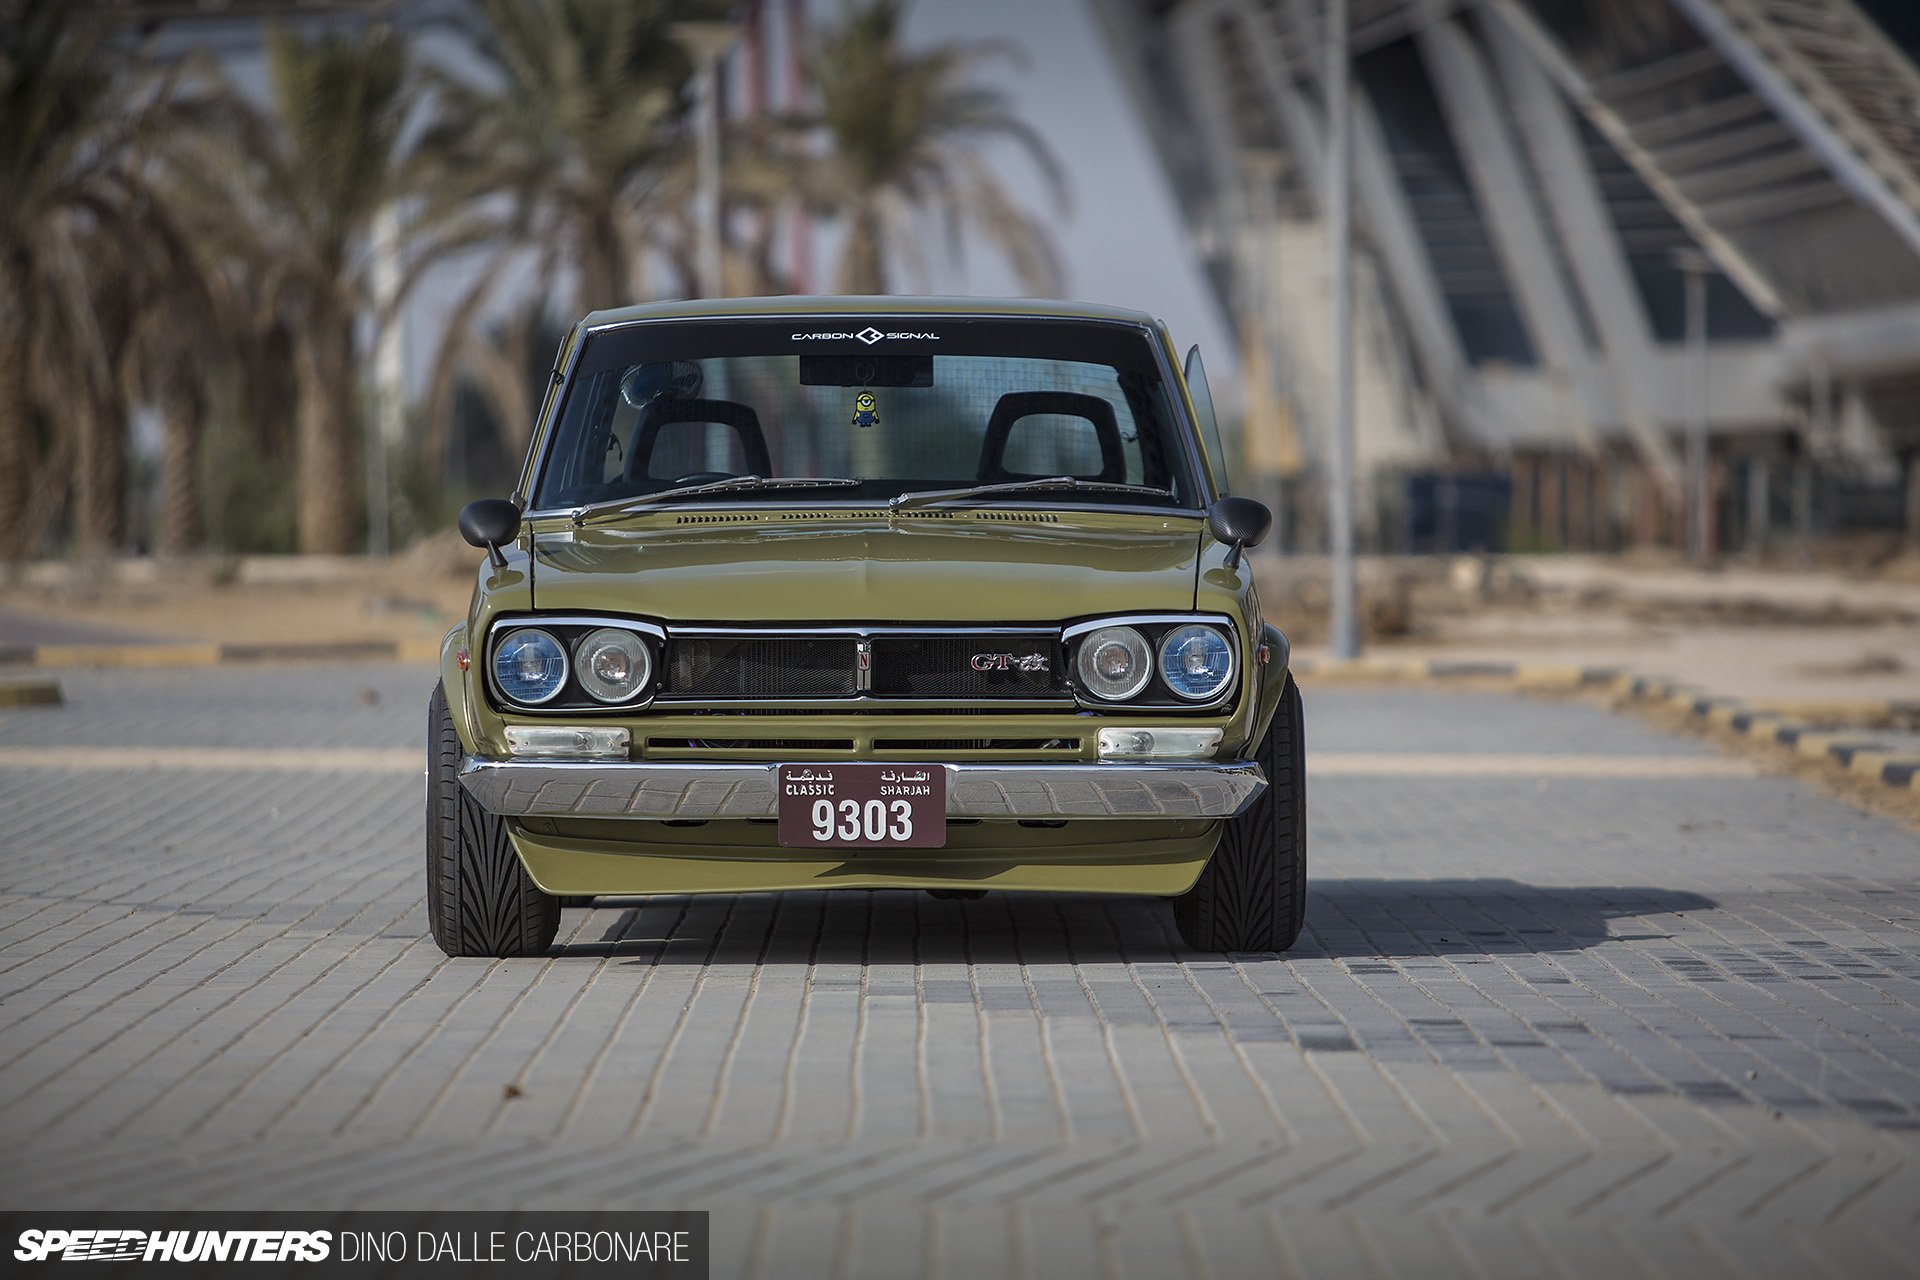 Wallpaper Car Tokyo Drift A Hakosuka Built With Surgical Precision Speedhunters